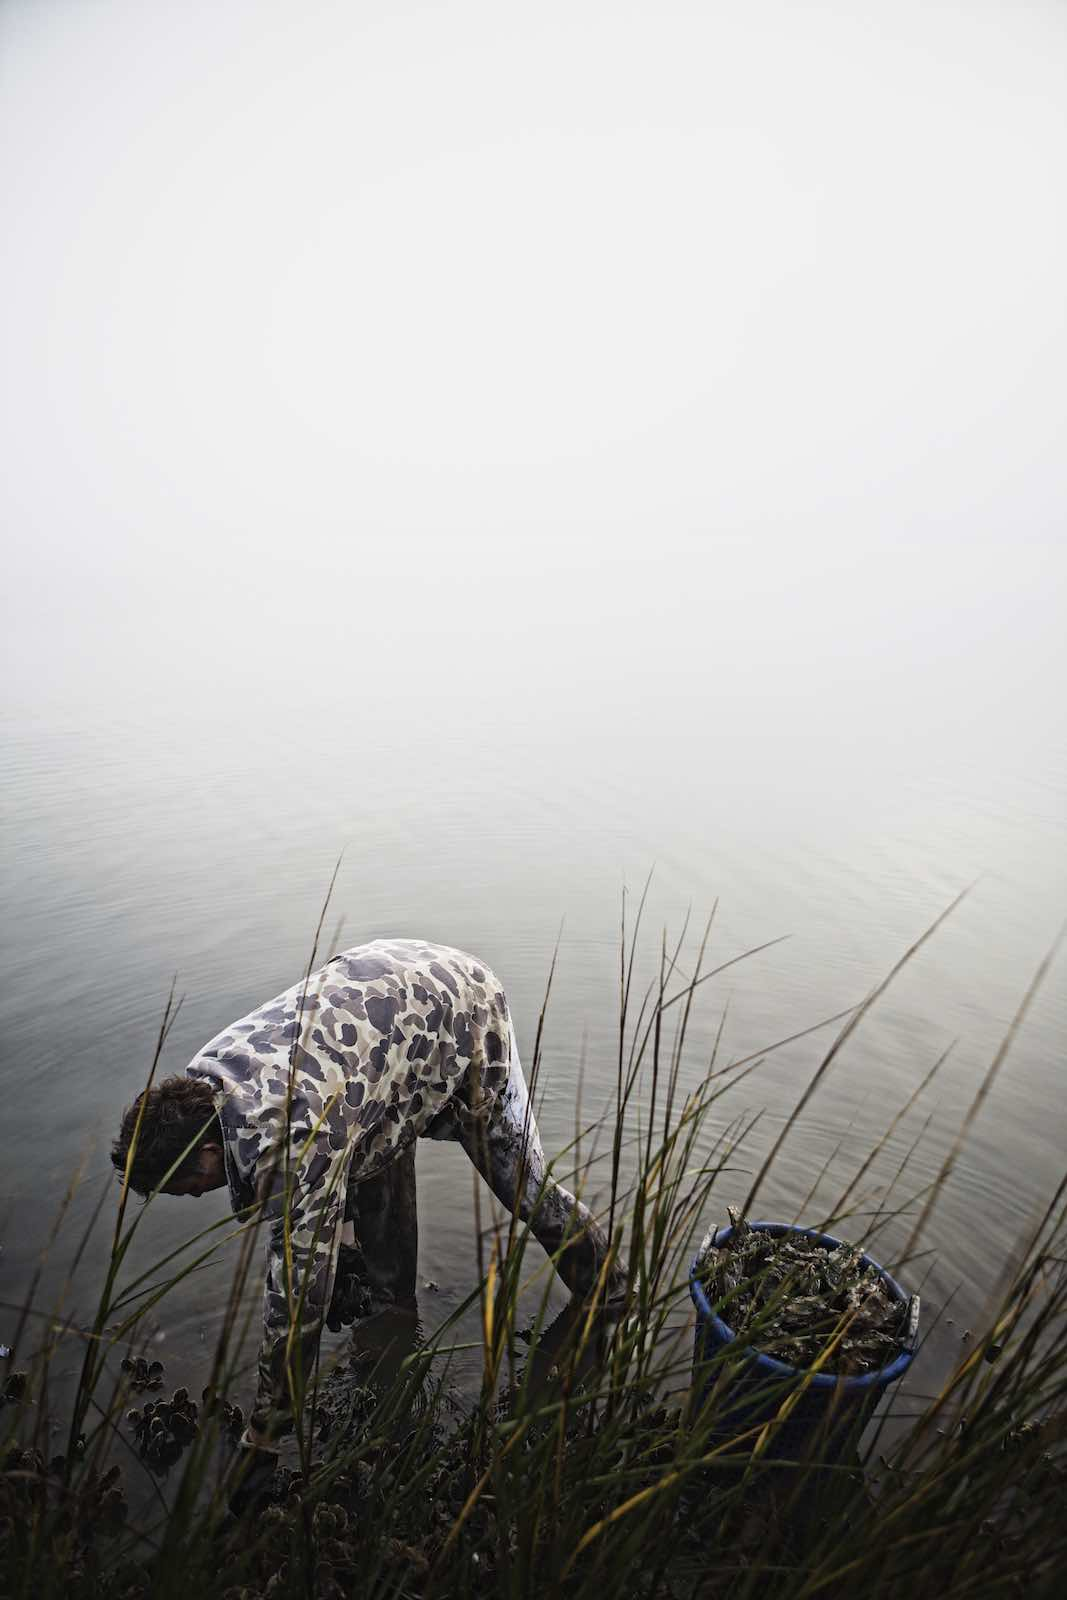 Jody Horton Photography - Fisherman collecting oysters in shallow water.